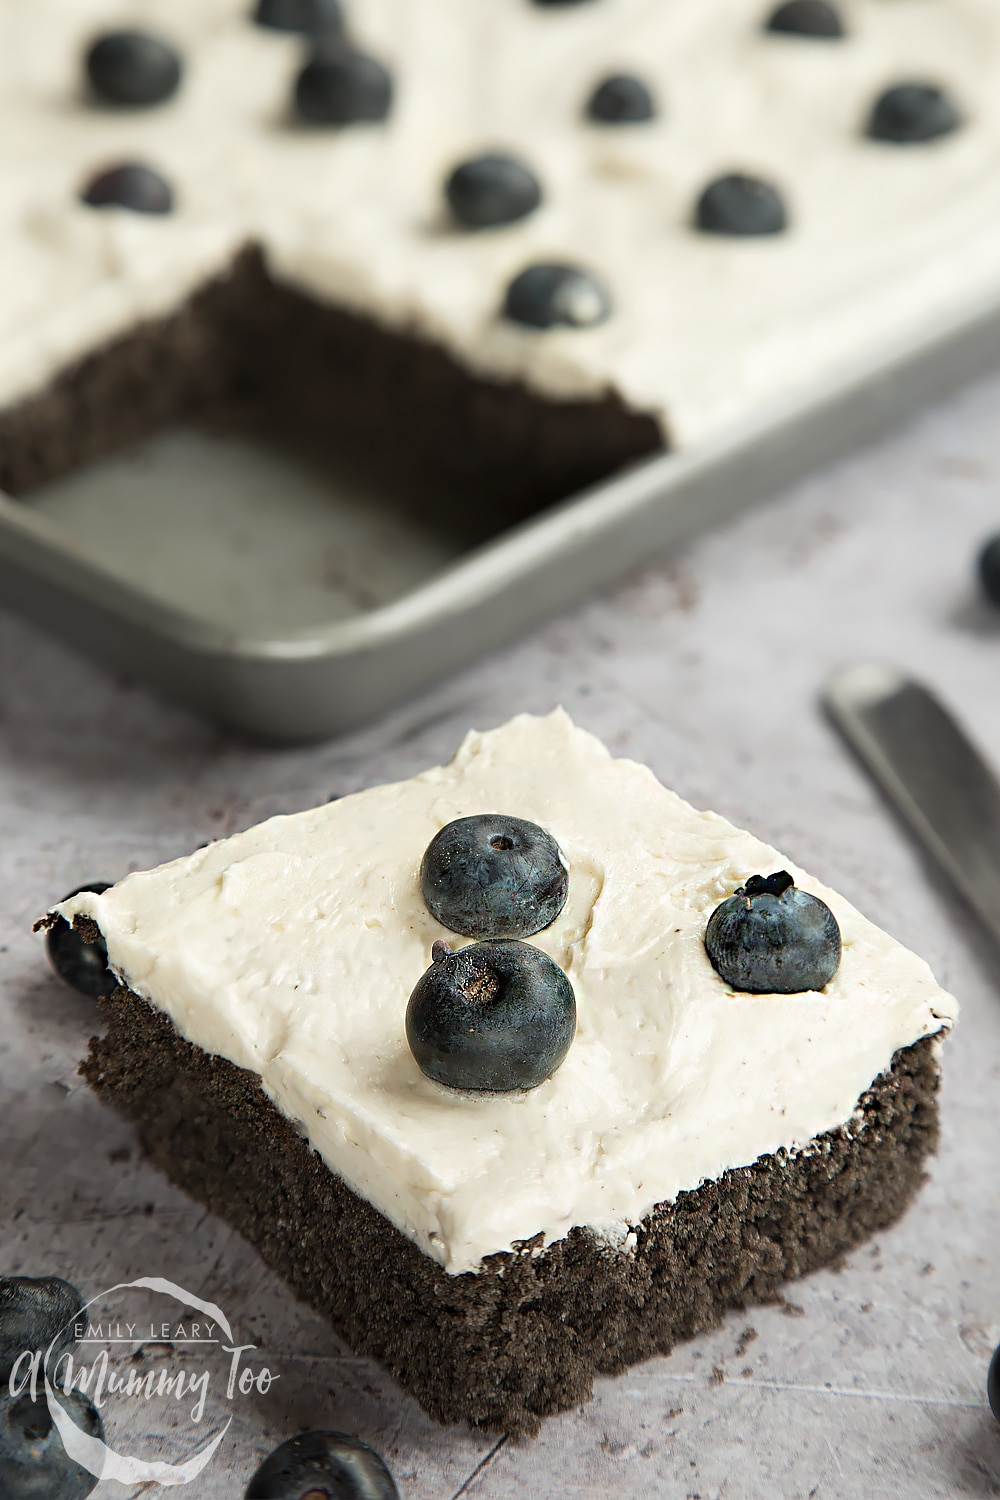 A slice of black velvet sheet cake with classic velvet frosting, topped with blueberries